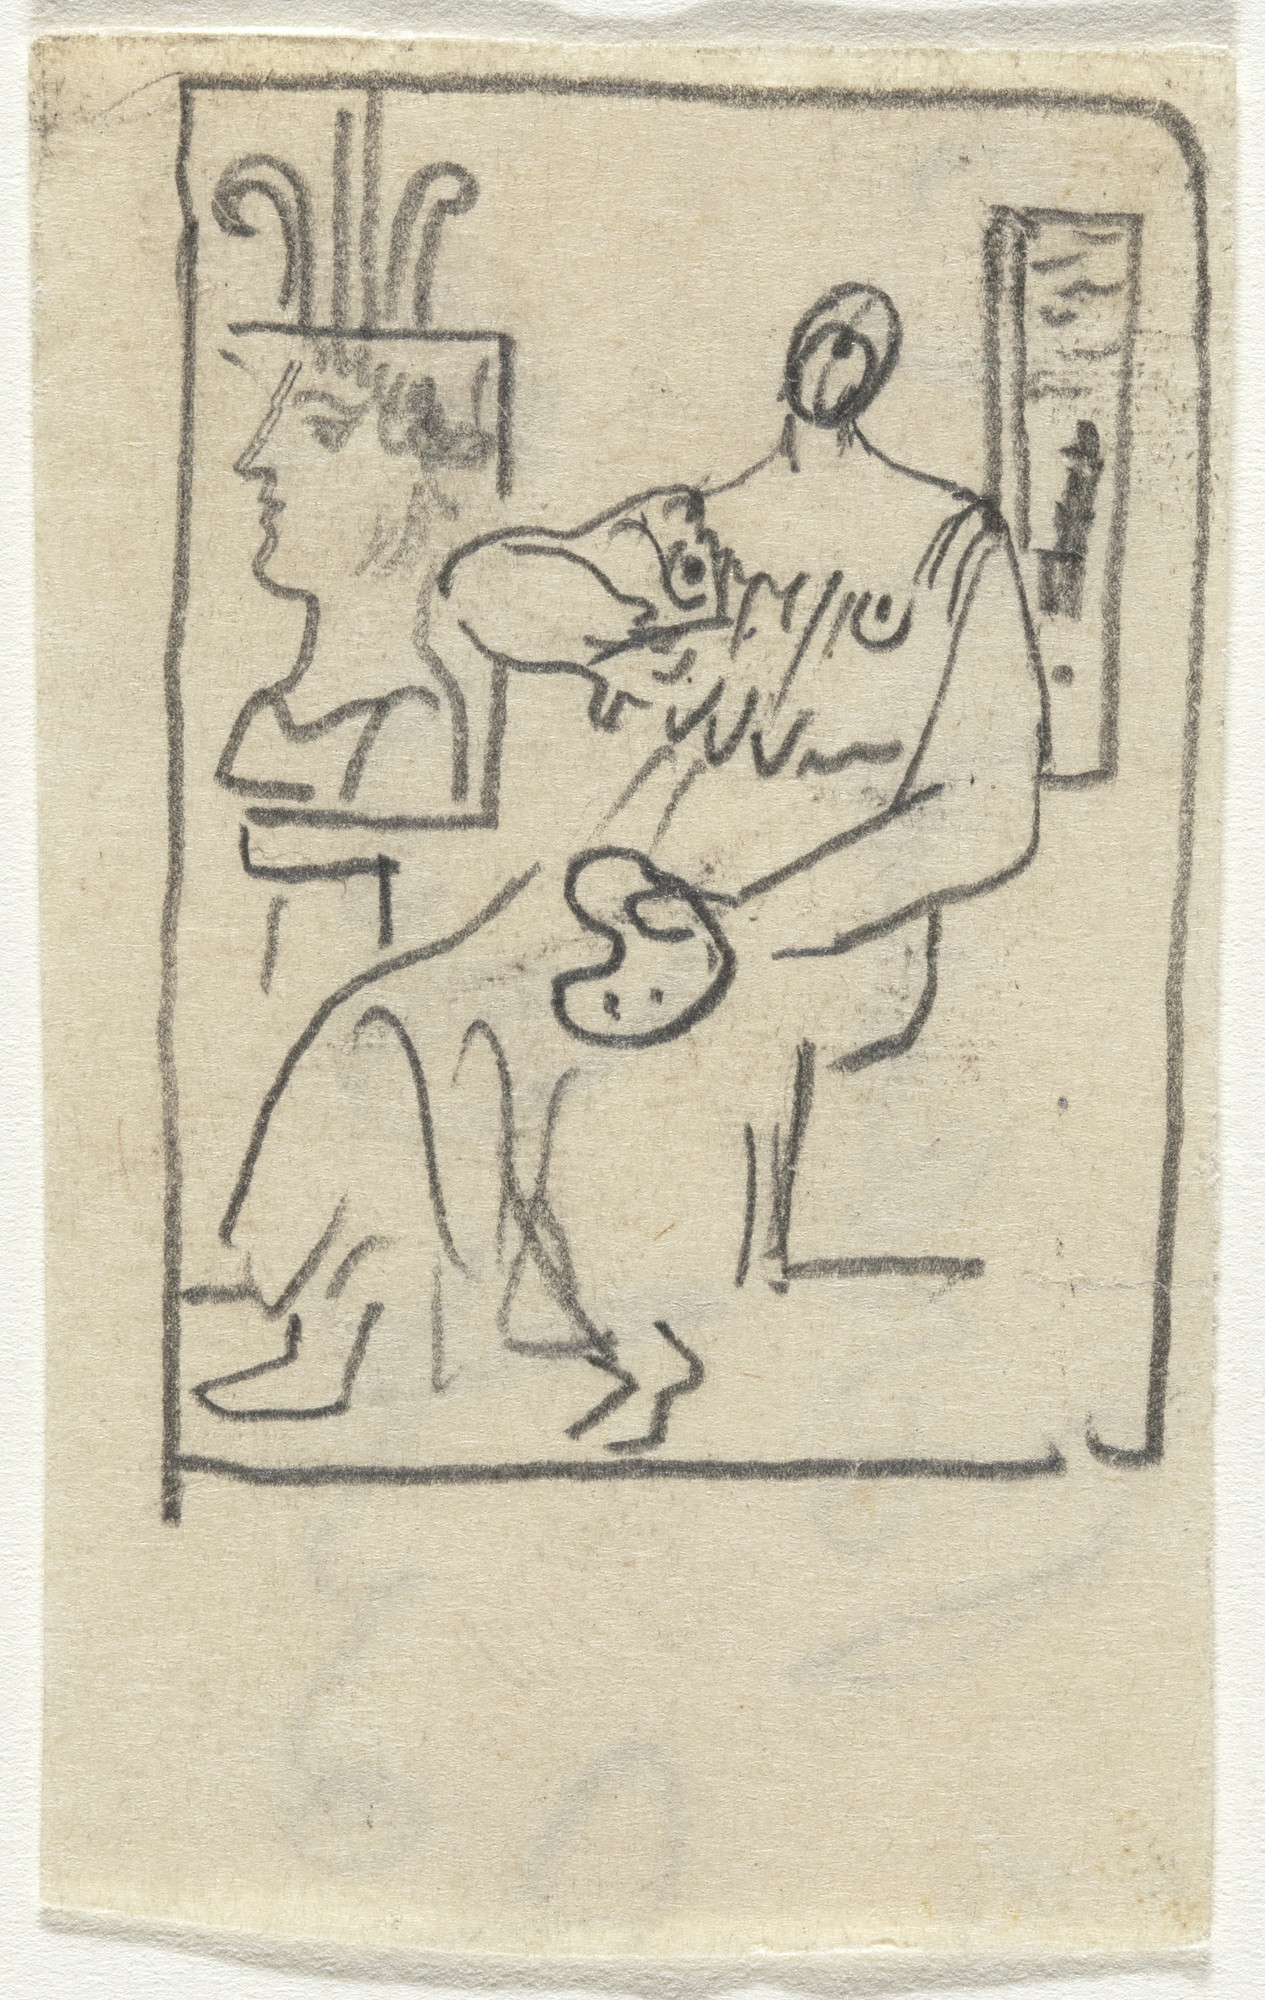 Arshile Gorky. Untitled (Study for Woman with Palette). (c. 1930-35)